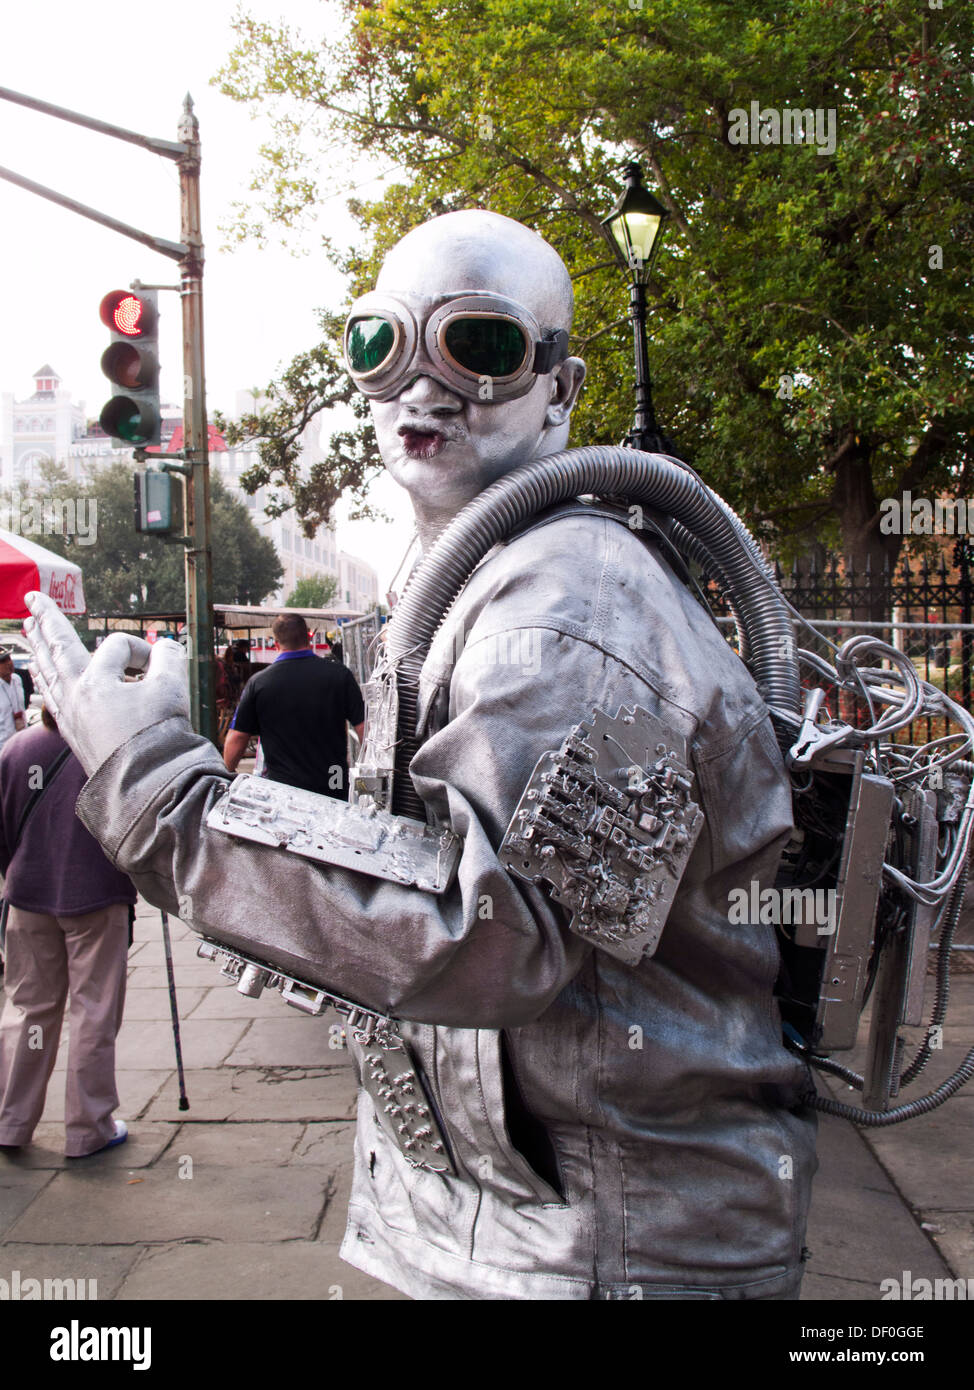 Mime on street in New Orleans Stock Photo